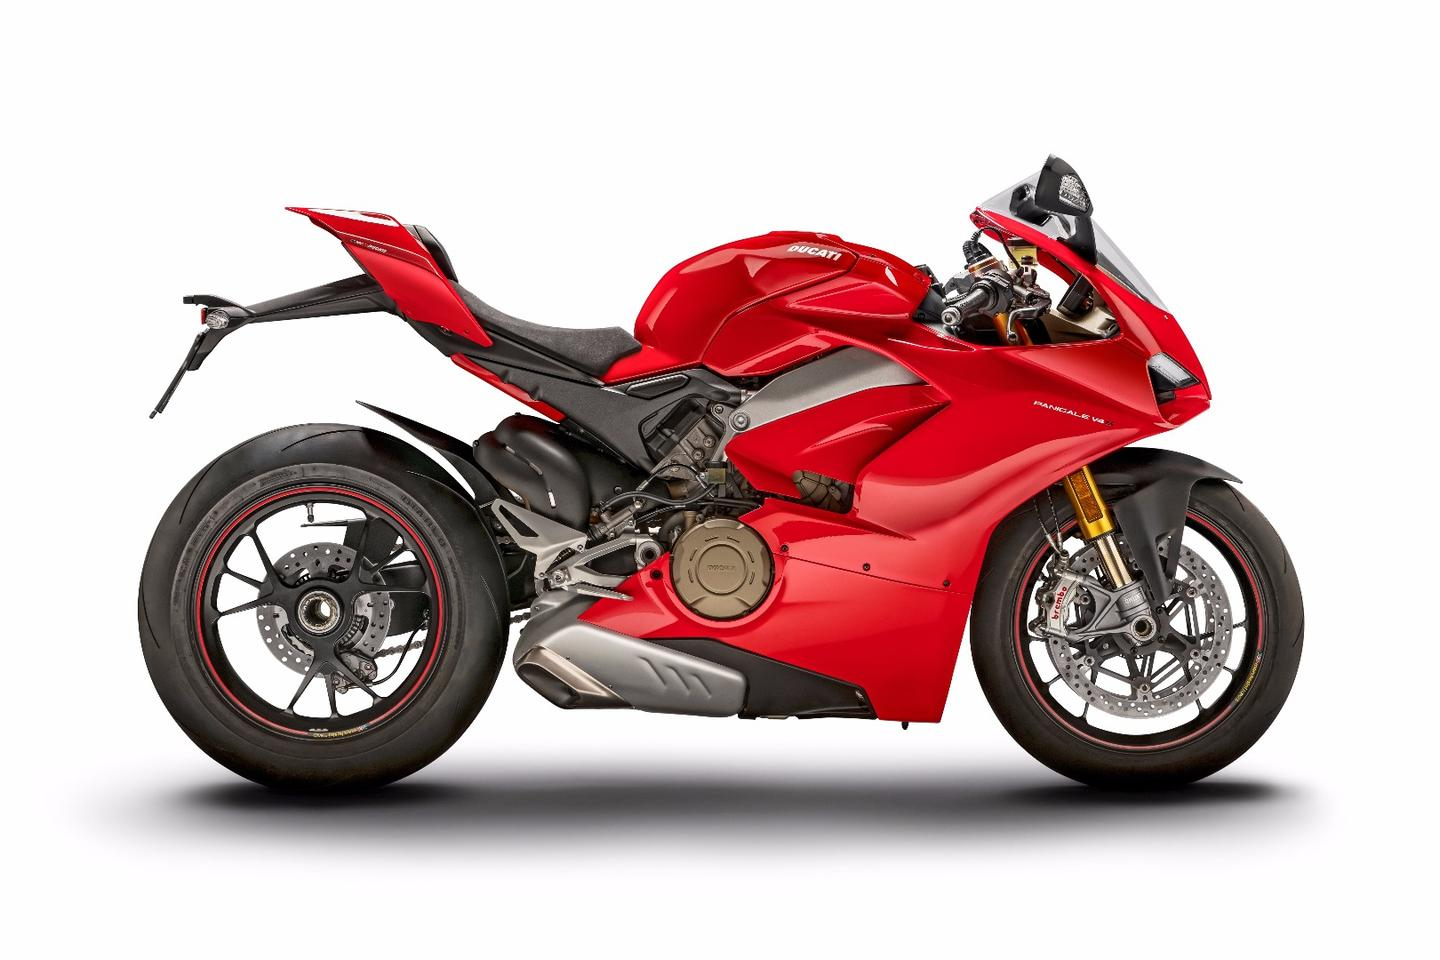 The 2018 Panigale V4 is the most powerful bike ever in the superbike class